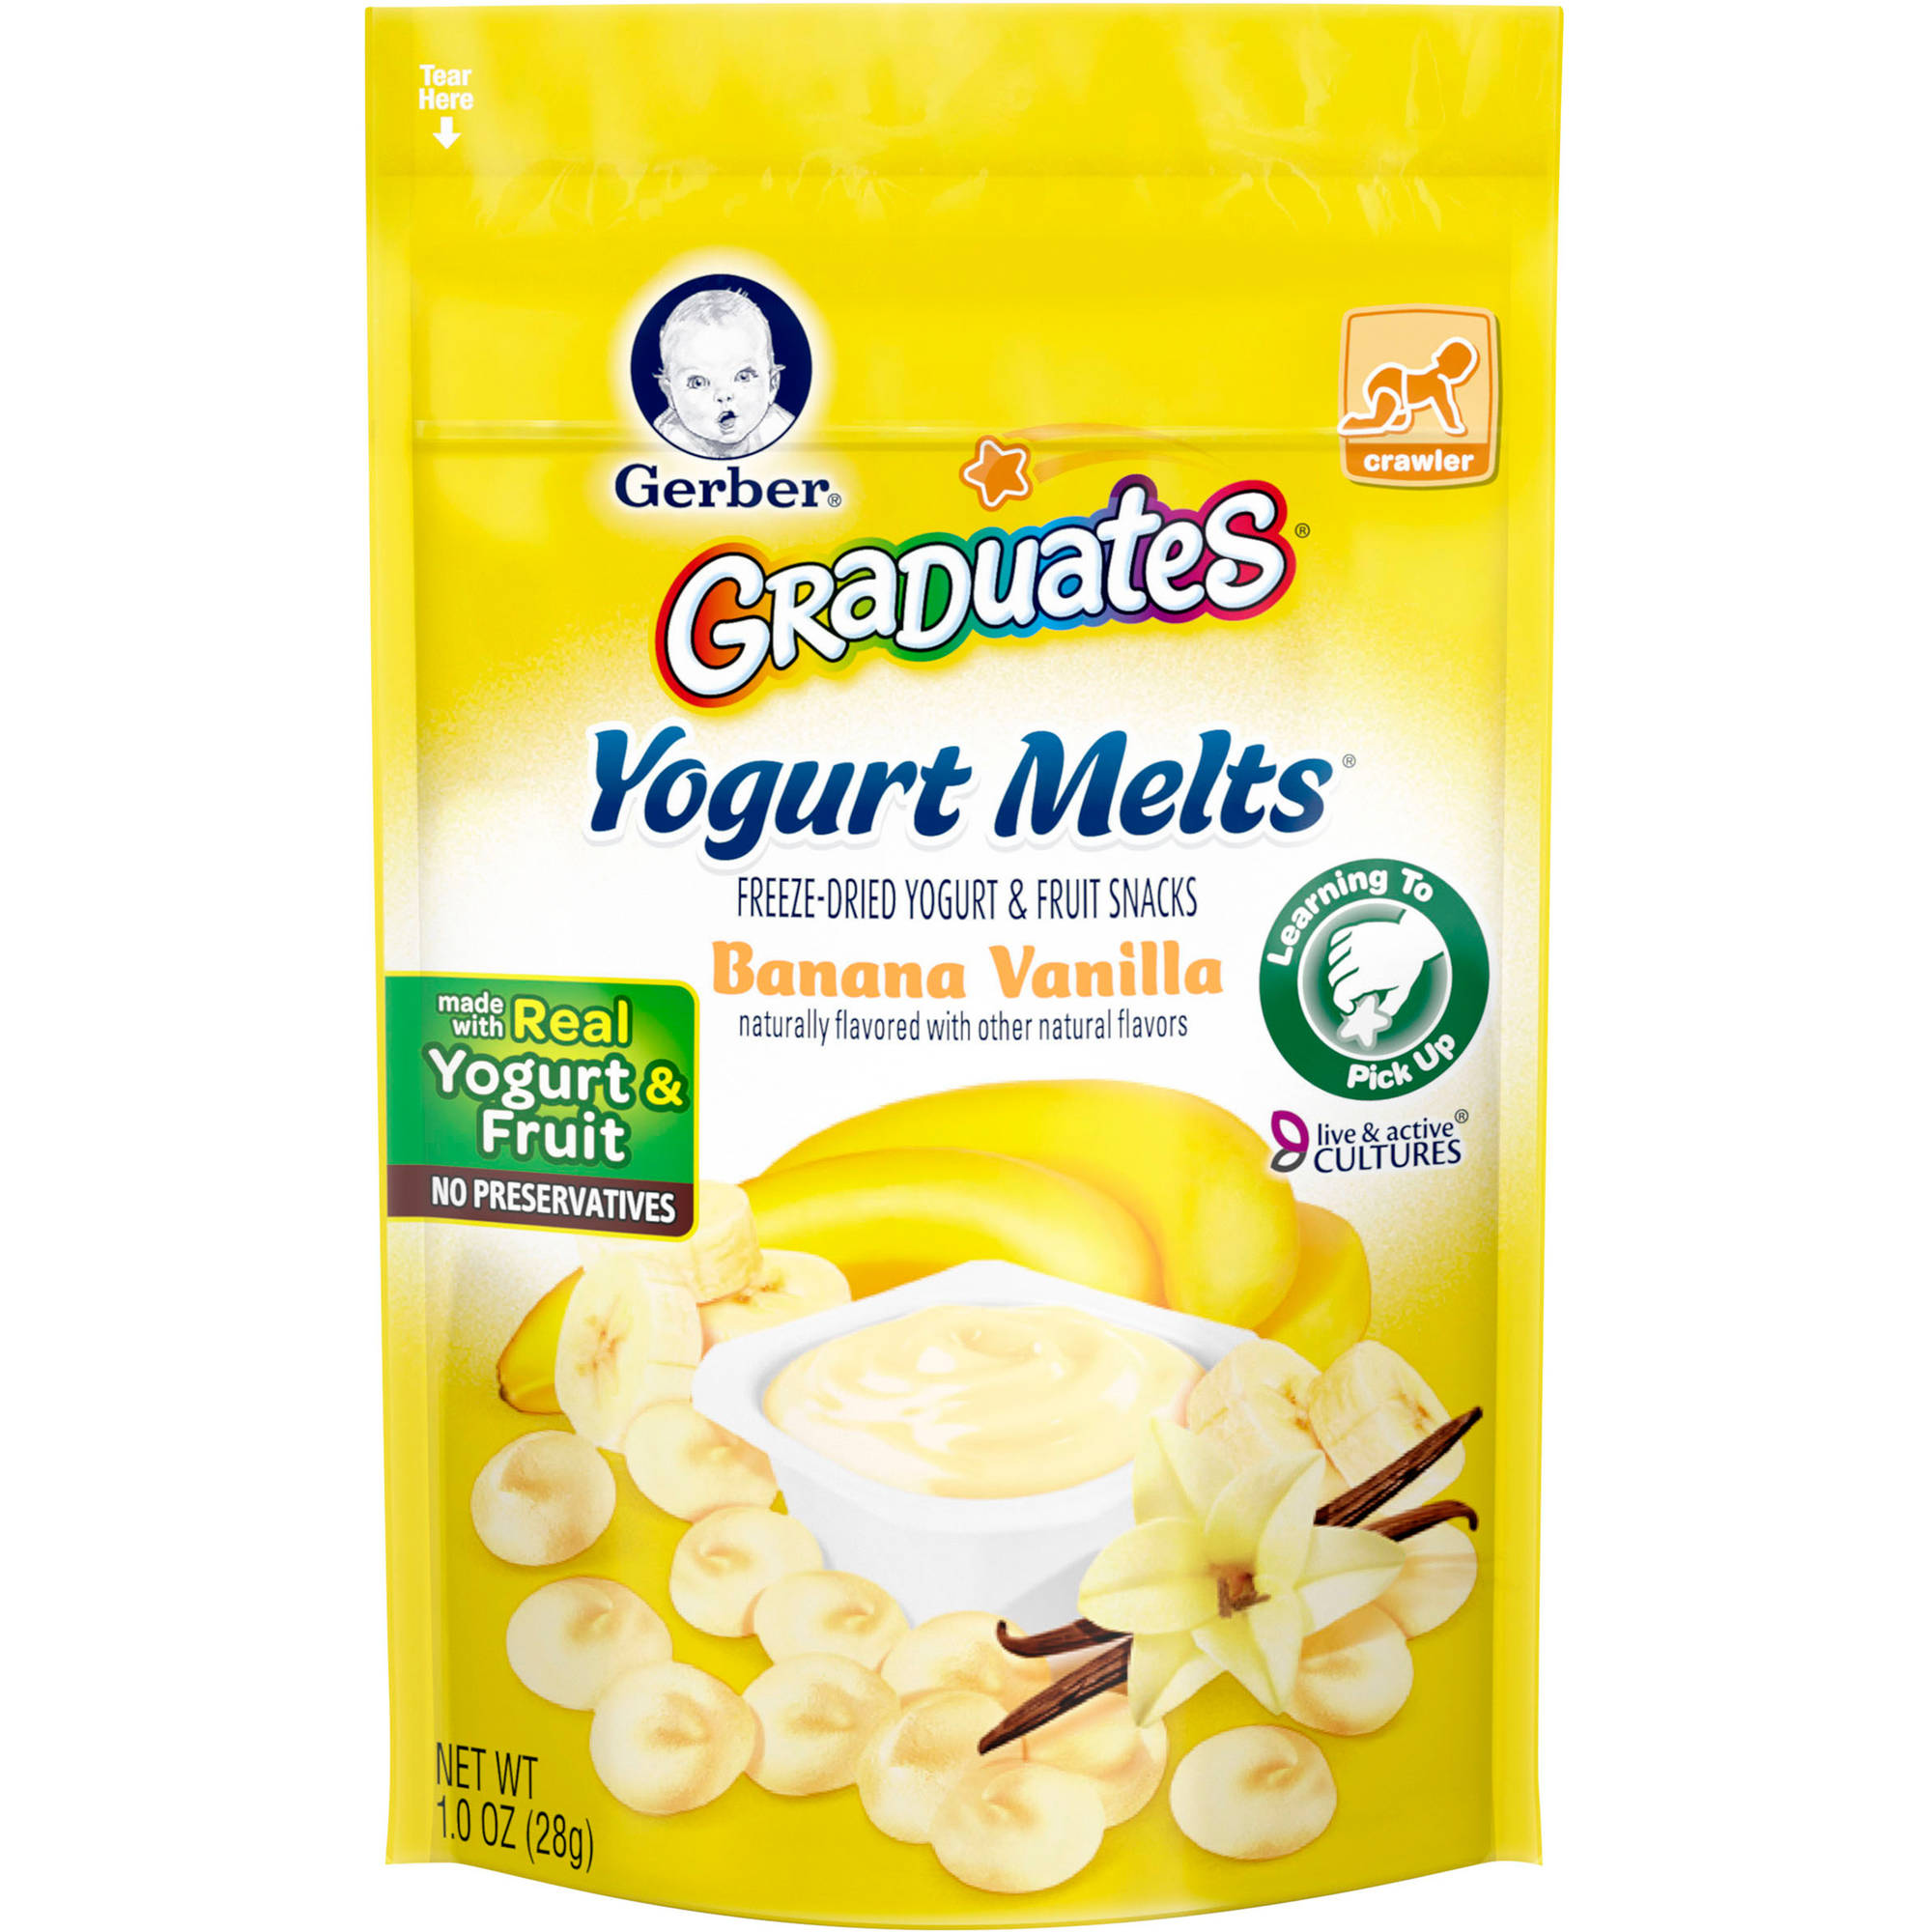 Gerber Graduates Yogurt Melts Freeze-Dried Yogurt & Fruit Snacks, Banana Vanilla, Naturally Flavored with Other Natural Flavors, 1 Ounce, 1 Count